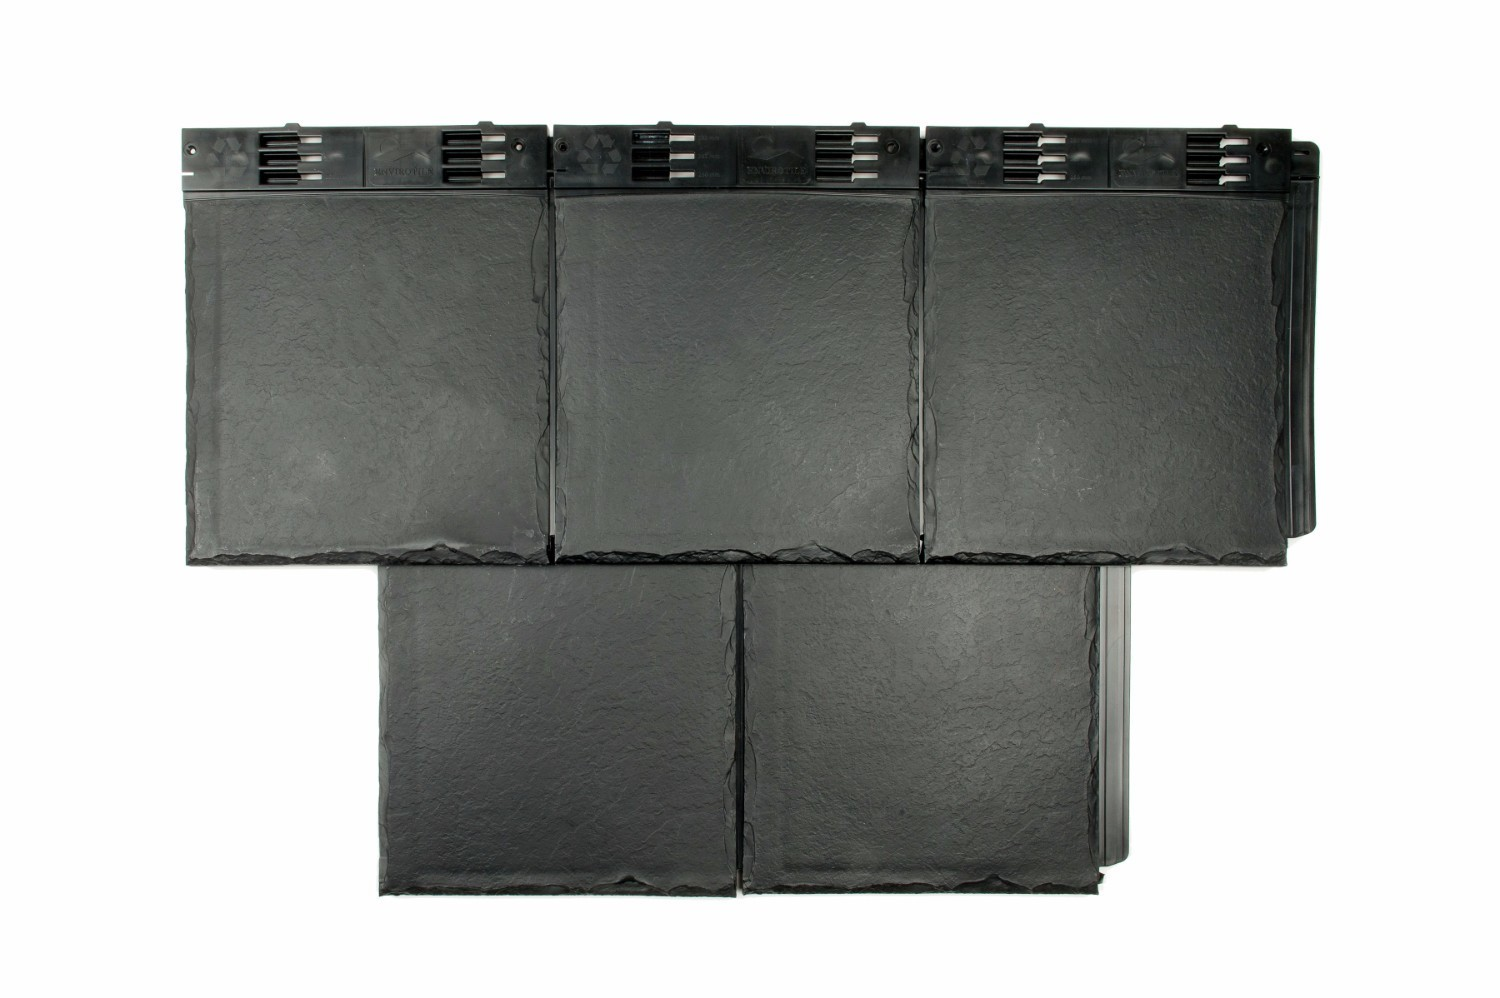 Envirotile Plastic Slate Tile Slate Grey Pack Of 10